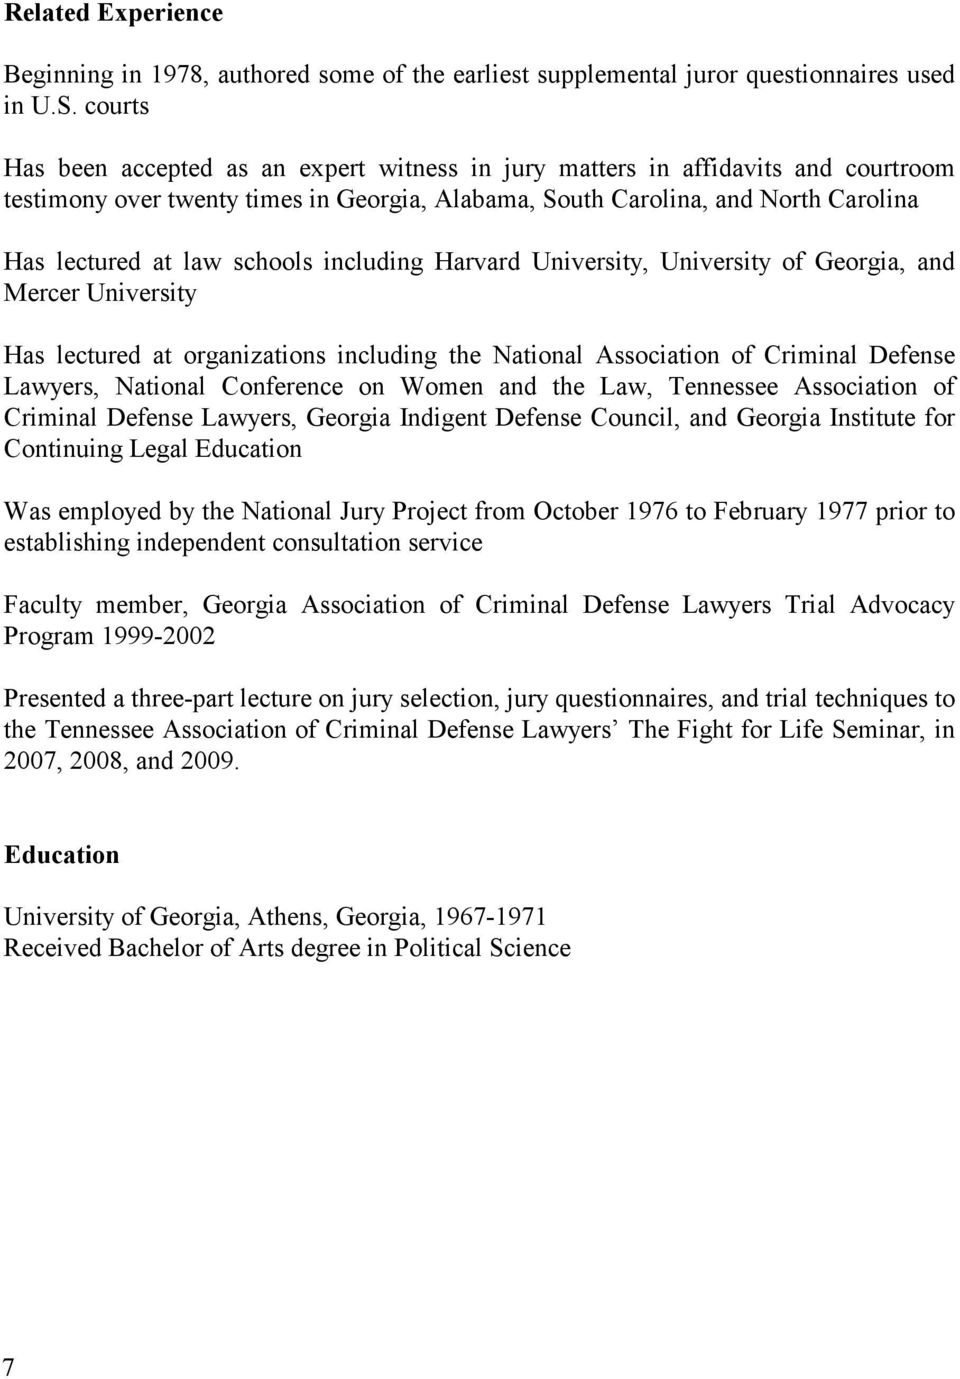 schools including Harvard University, University of Georgia, and Mercer University Has lectured at organizations including the National Association of Criminal Defense Lawyers, National Conference on